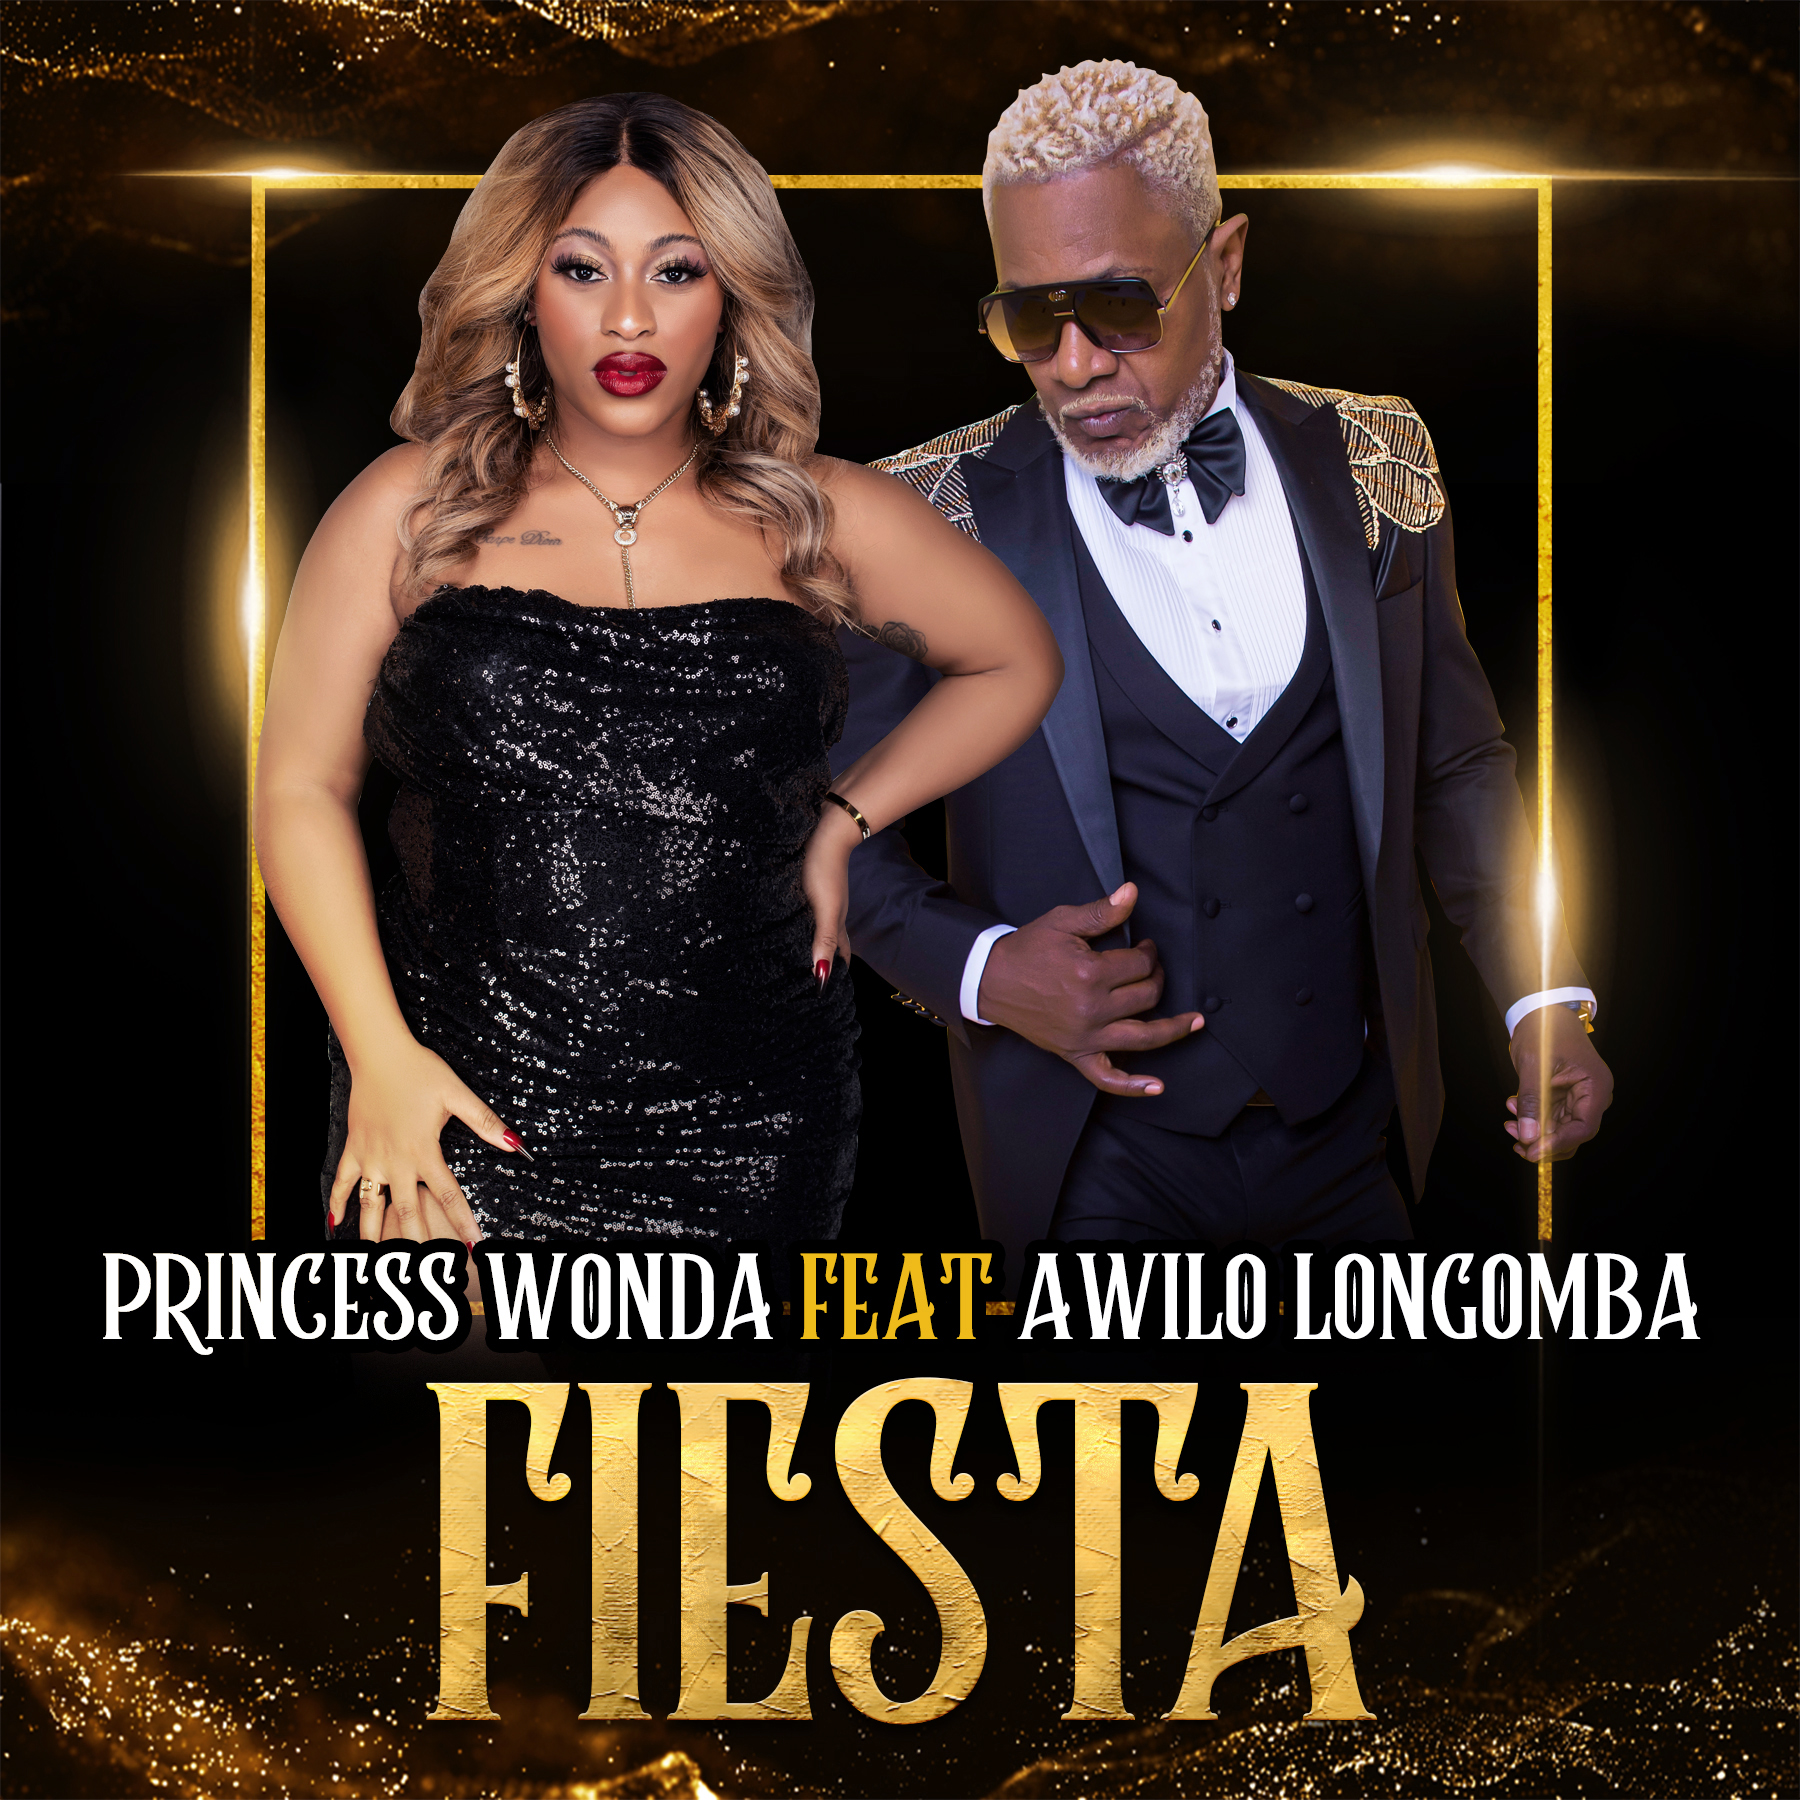 Princess Wonda's party single featuring Awilo Longomba